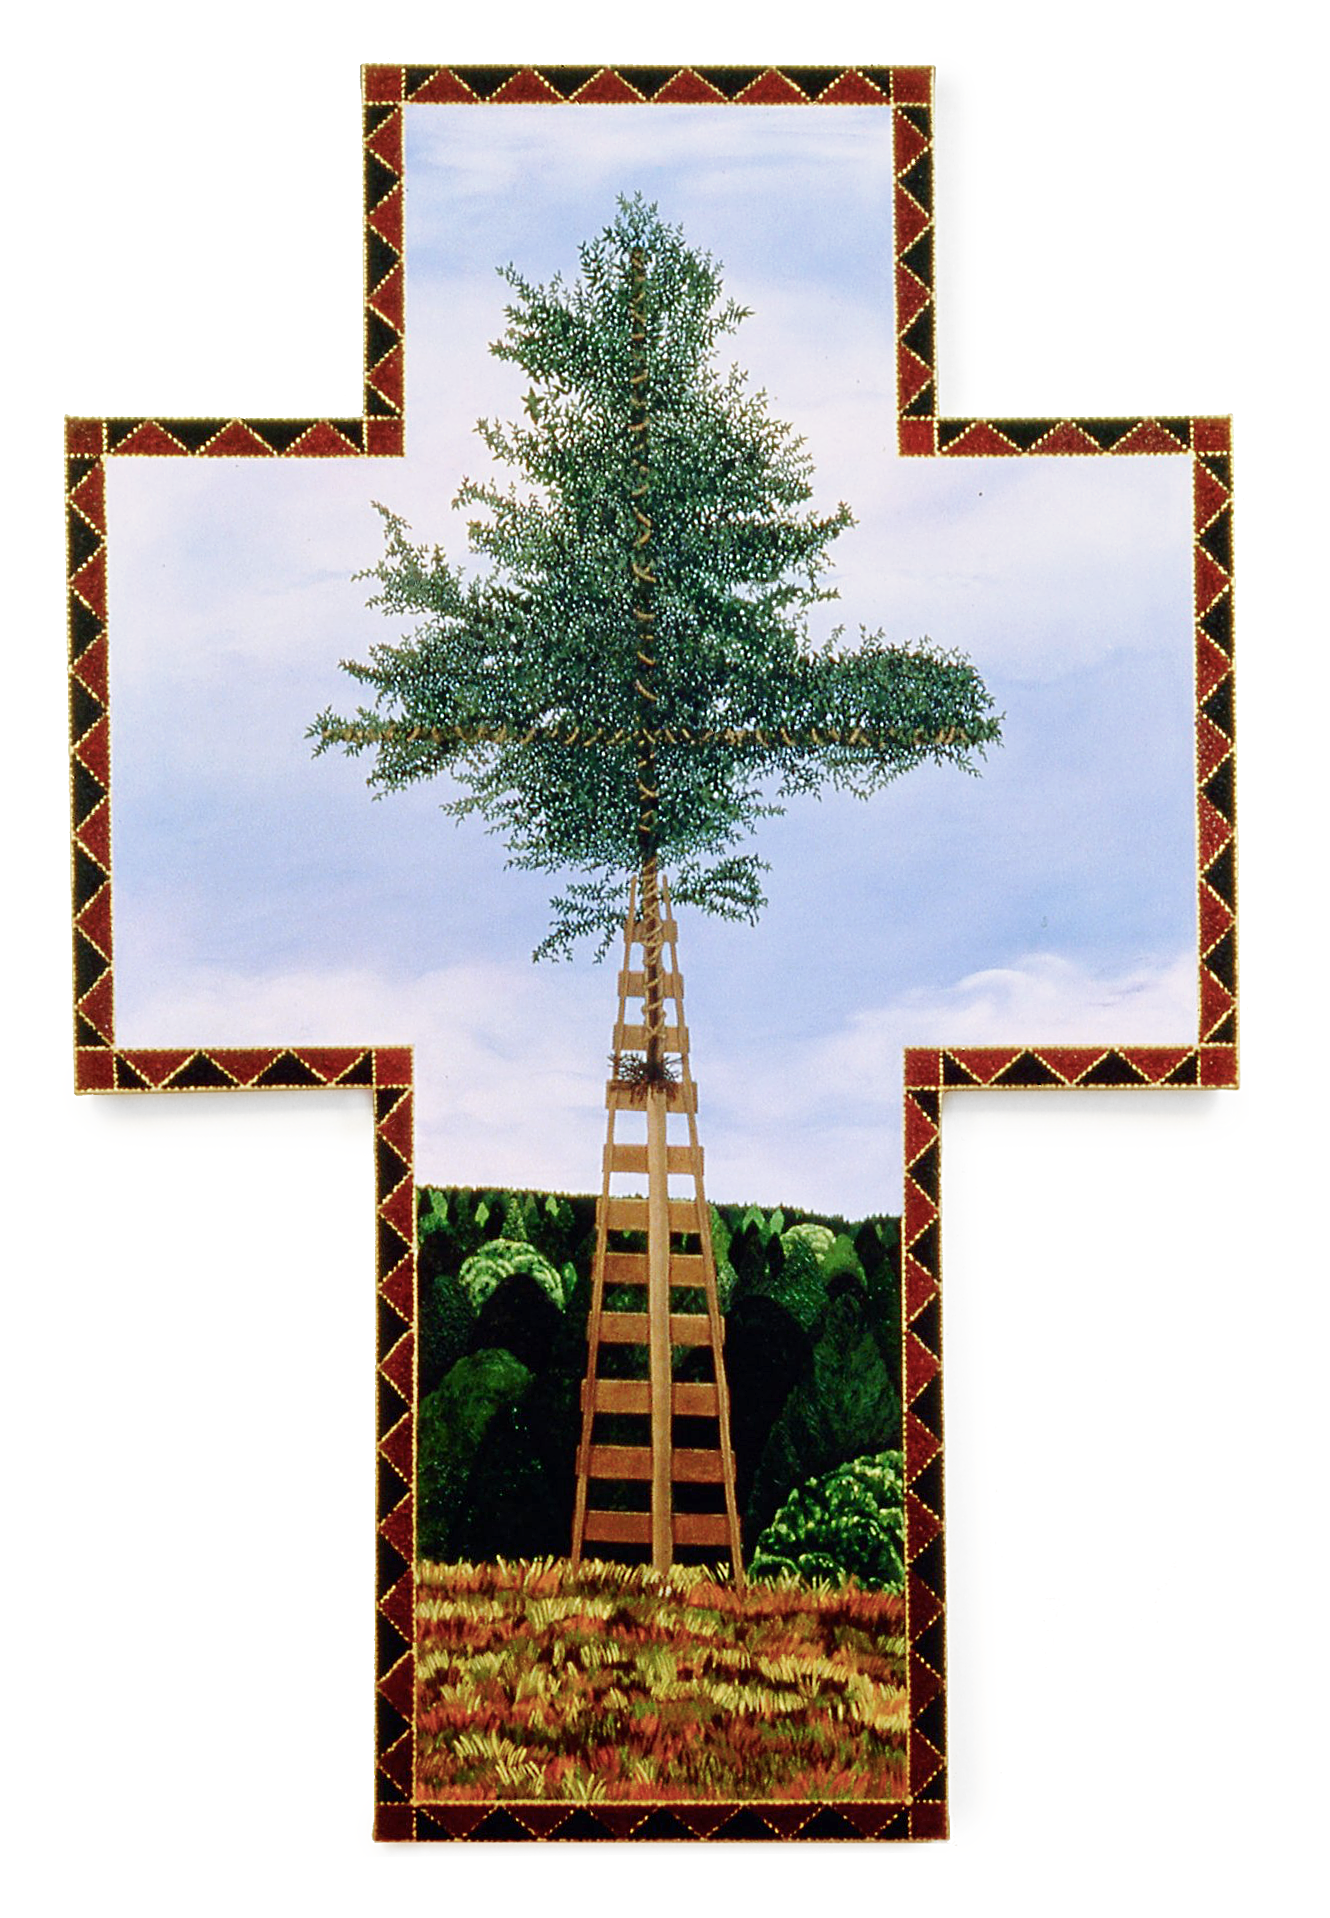 Cruxified Tree, oil on shaped canvas, 90x59 (1995)